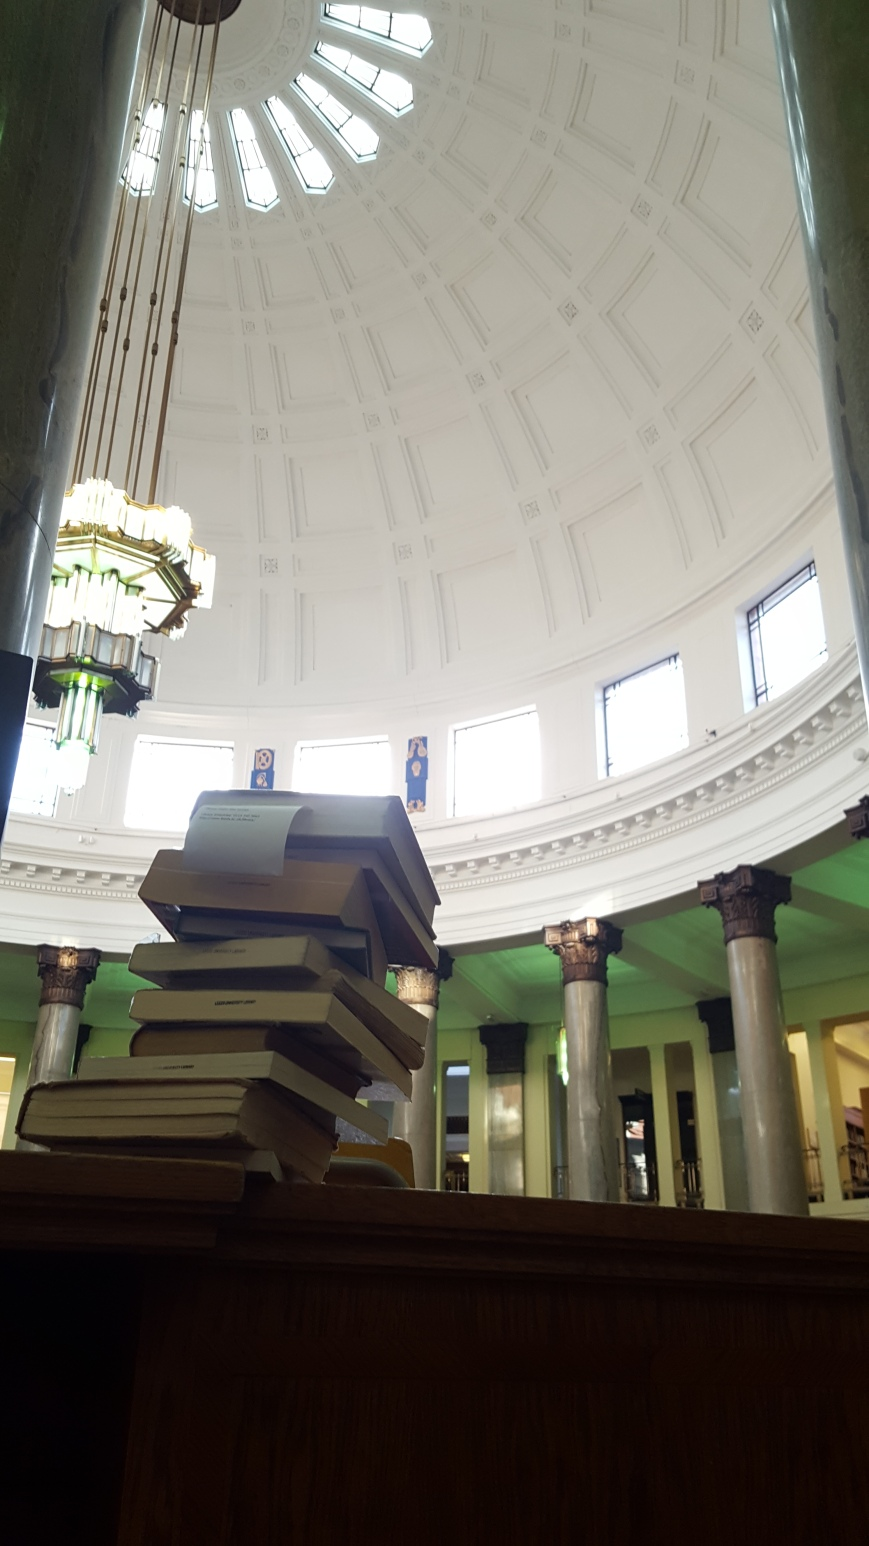 Parkinson Library, University of Leeds, 24 July 2017, photo by Adam Cathcart